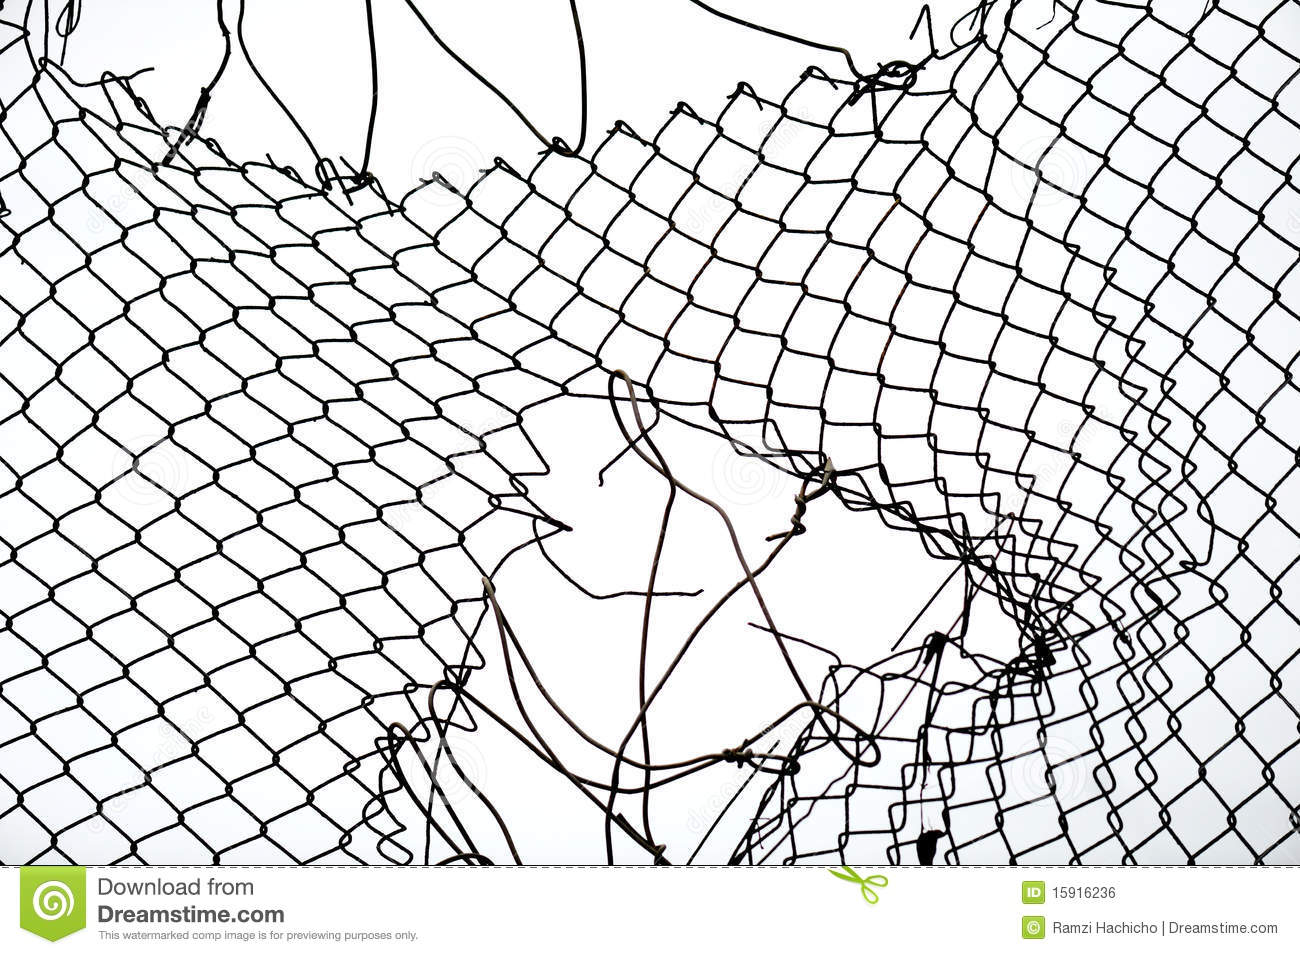 Broken iron wire fence stock photo. Image of link, backdrop - 15916134